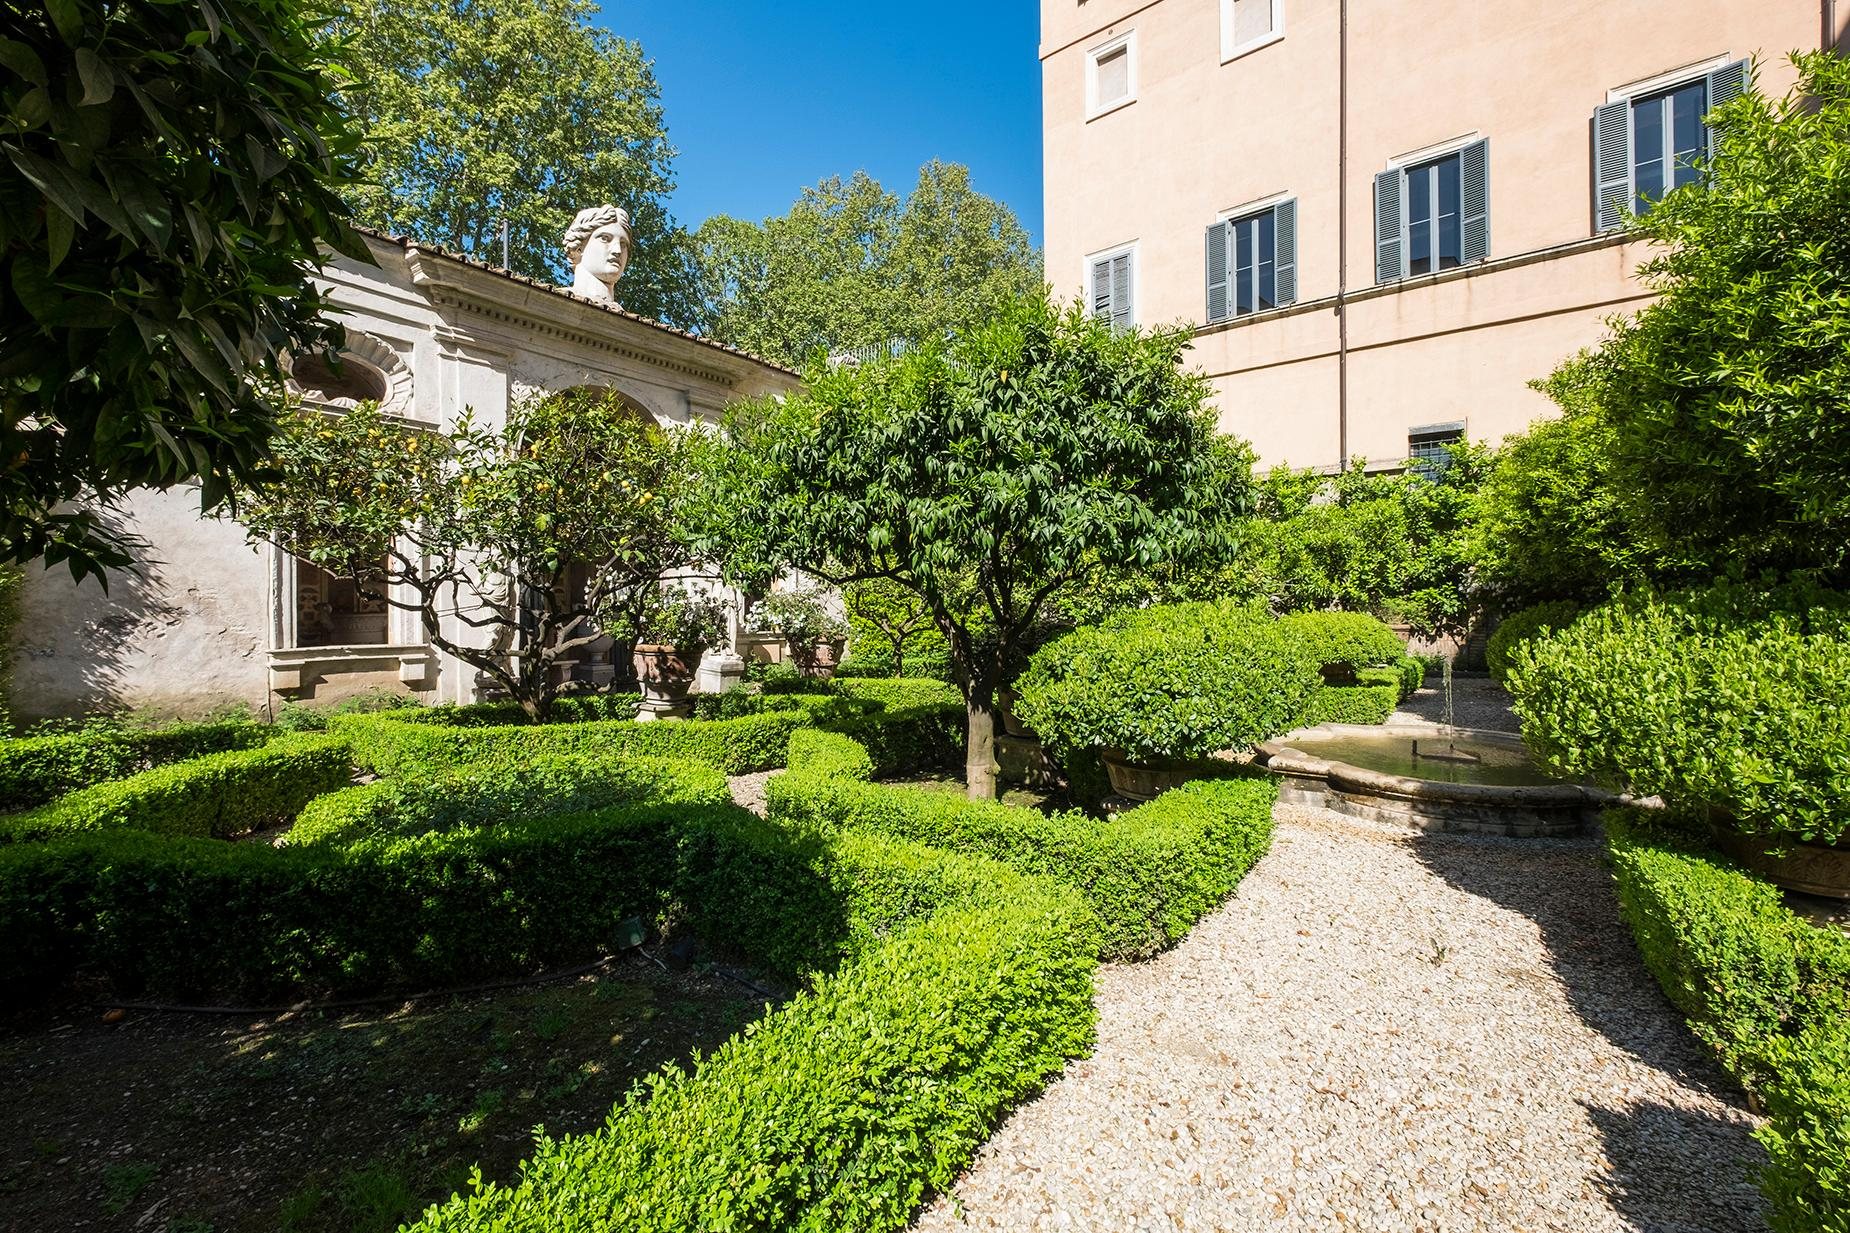 Palazzo Sacchetti, a pearl of the late reinassance in the heart of Rome - 8